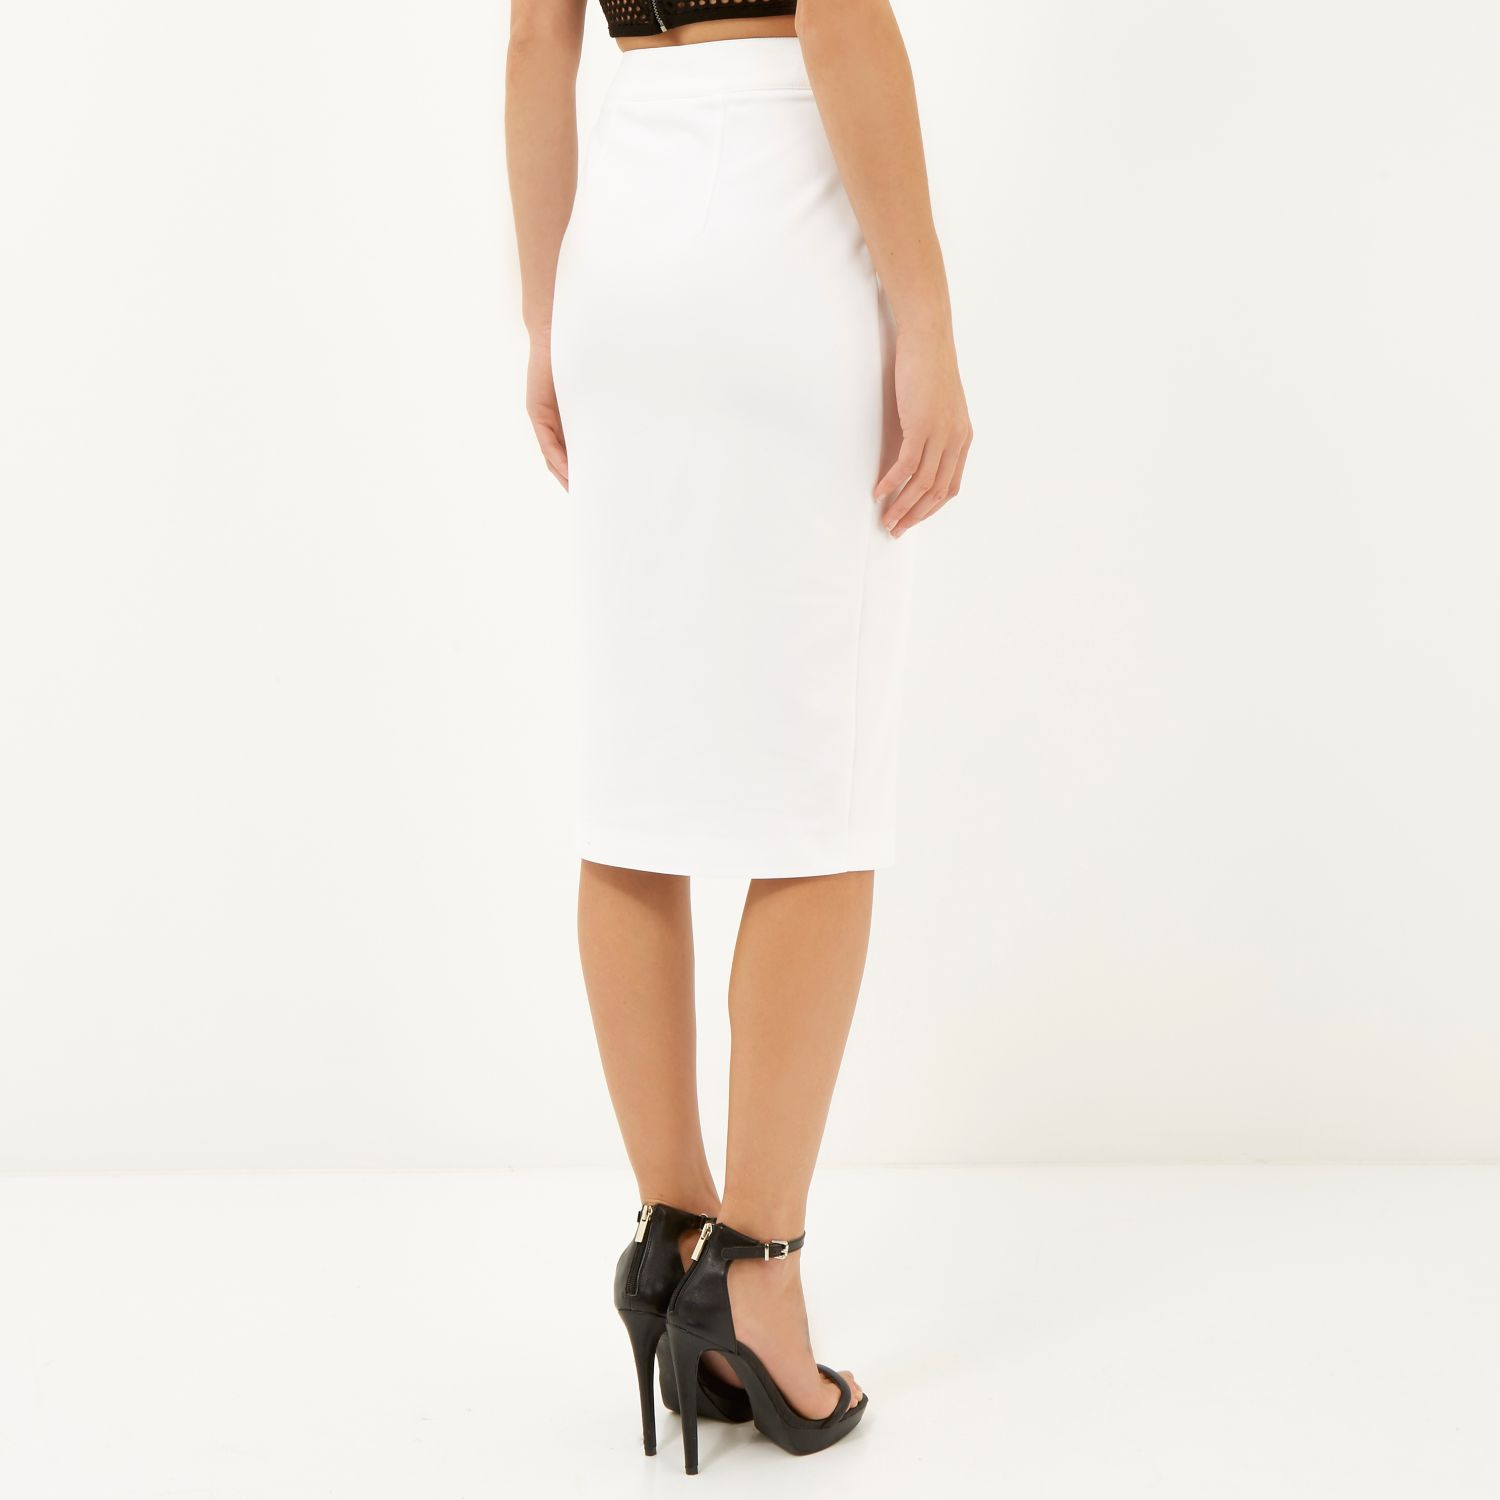 Buy Cheap Footlocker River Island Womens button front belted pencil skirt Shop Cheap Price Good Selling Cheap Online Discount 2018 New icE7uo3O